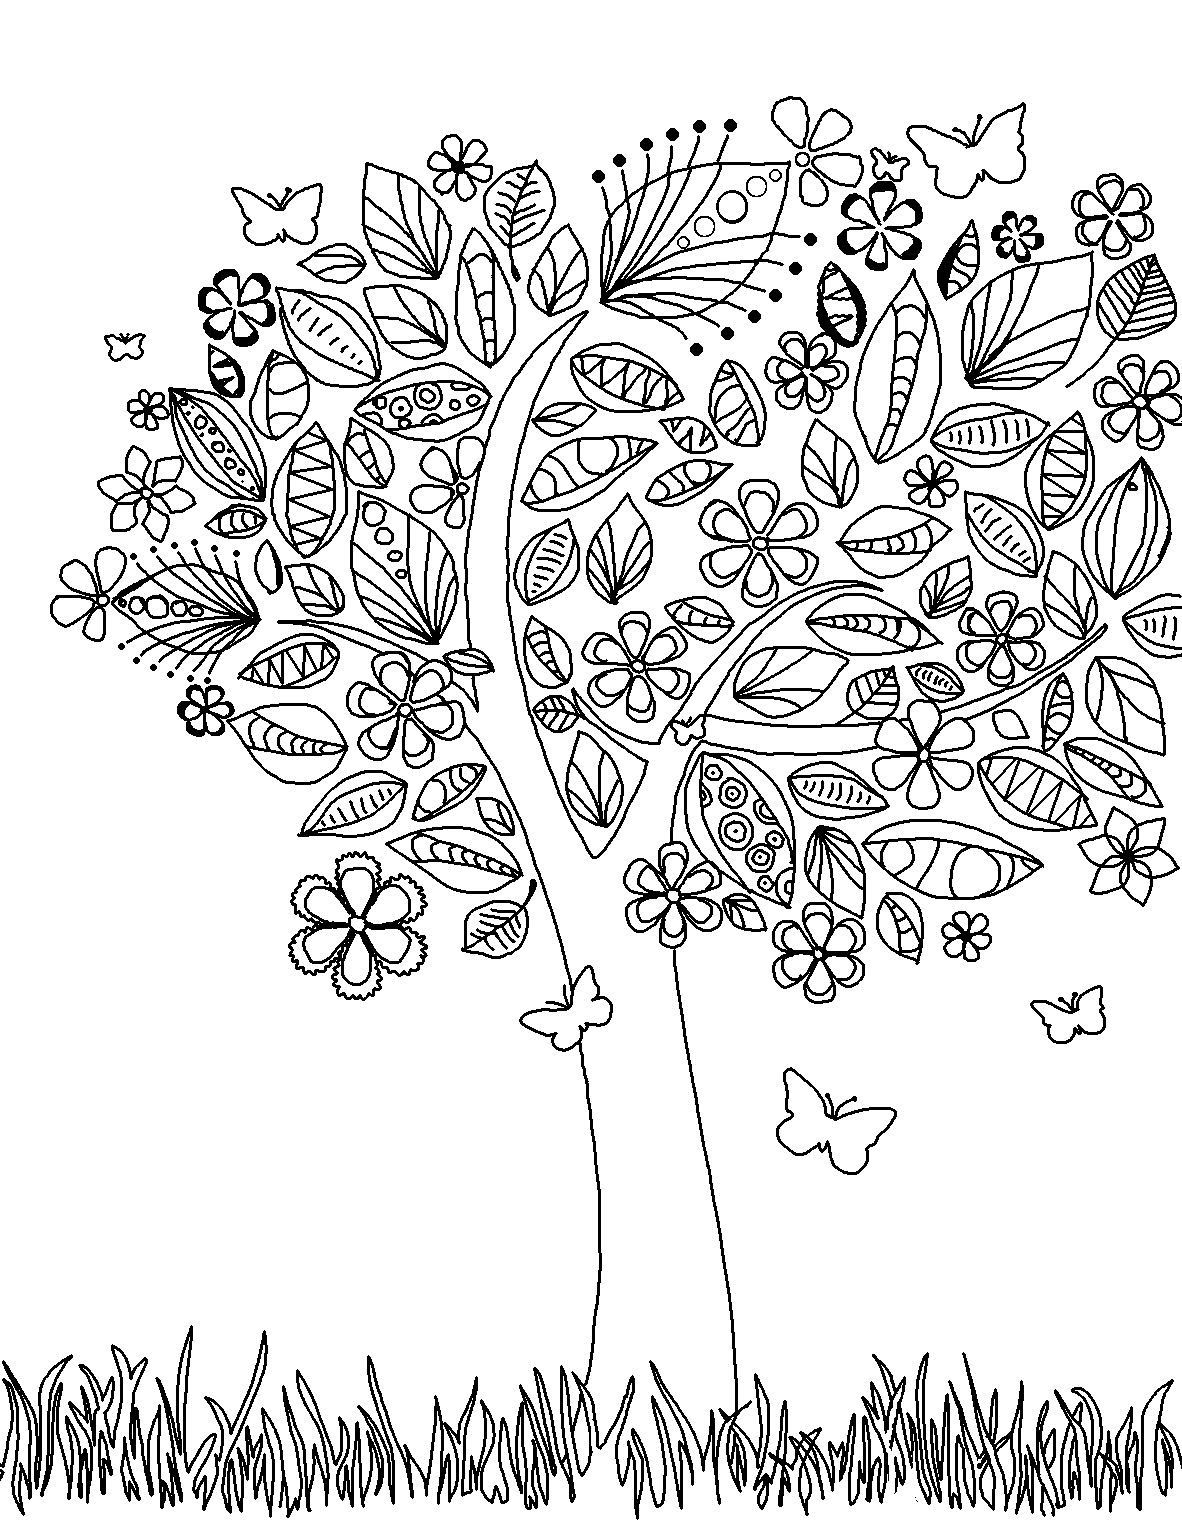 peacock coloring pages flower swirl pages elephant pages tree coloring page